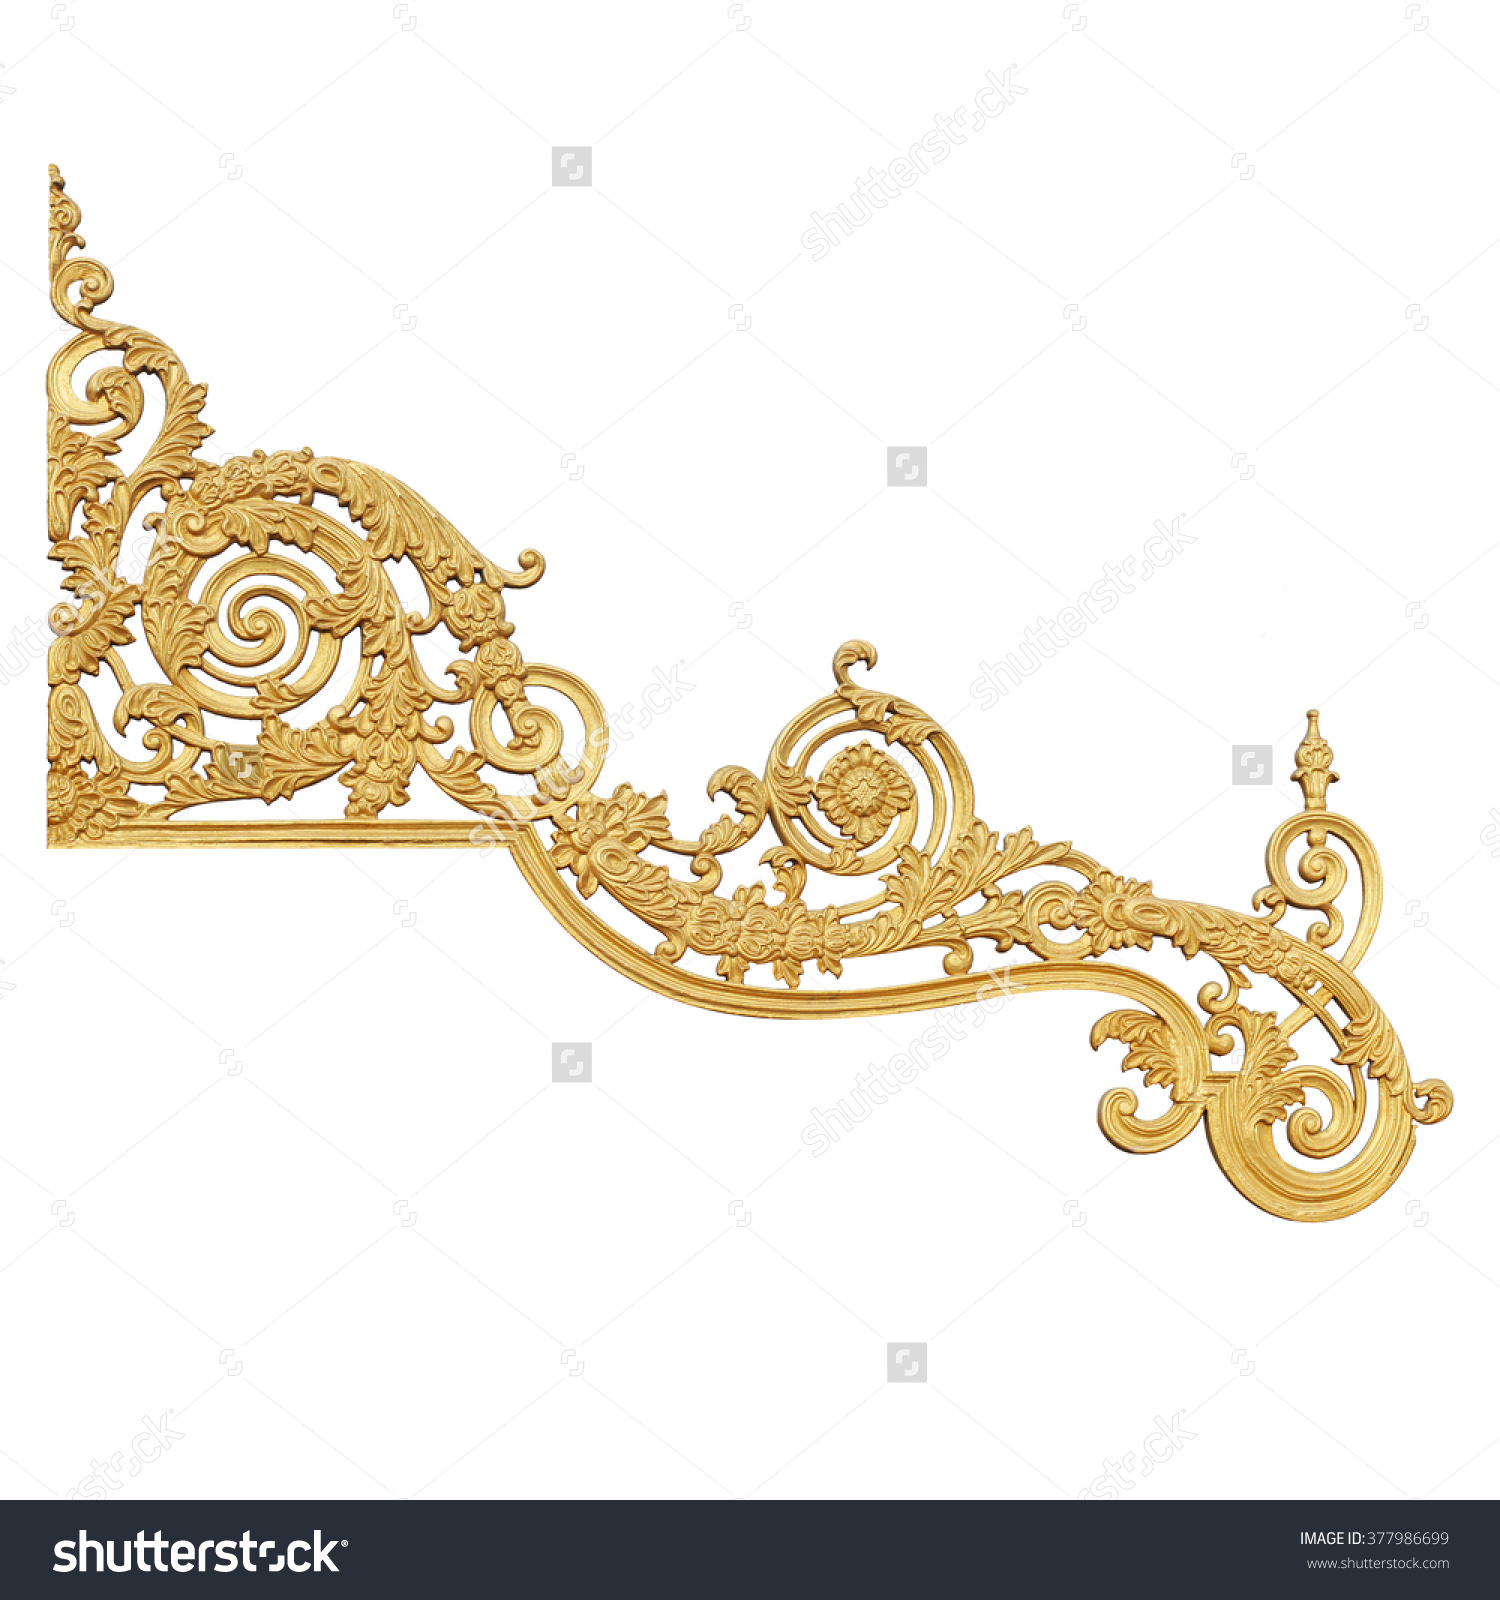 Old Antique Gold Frame Stucco Walls Stock Photo 377986699.